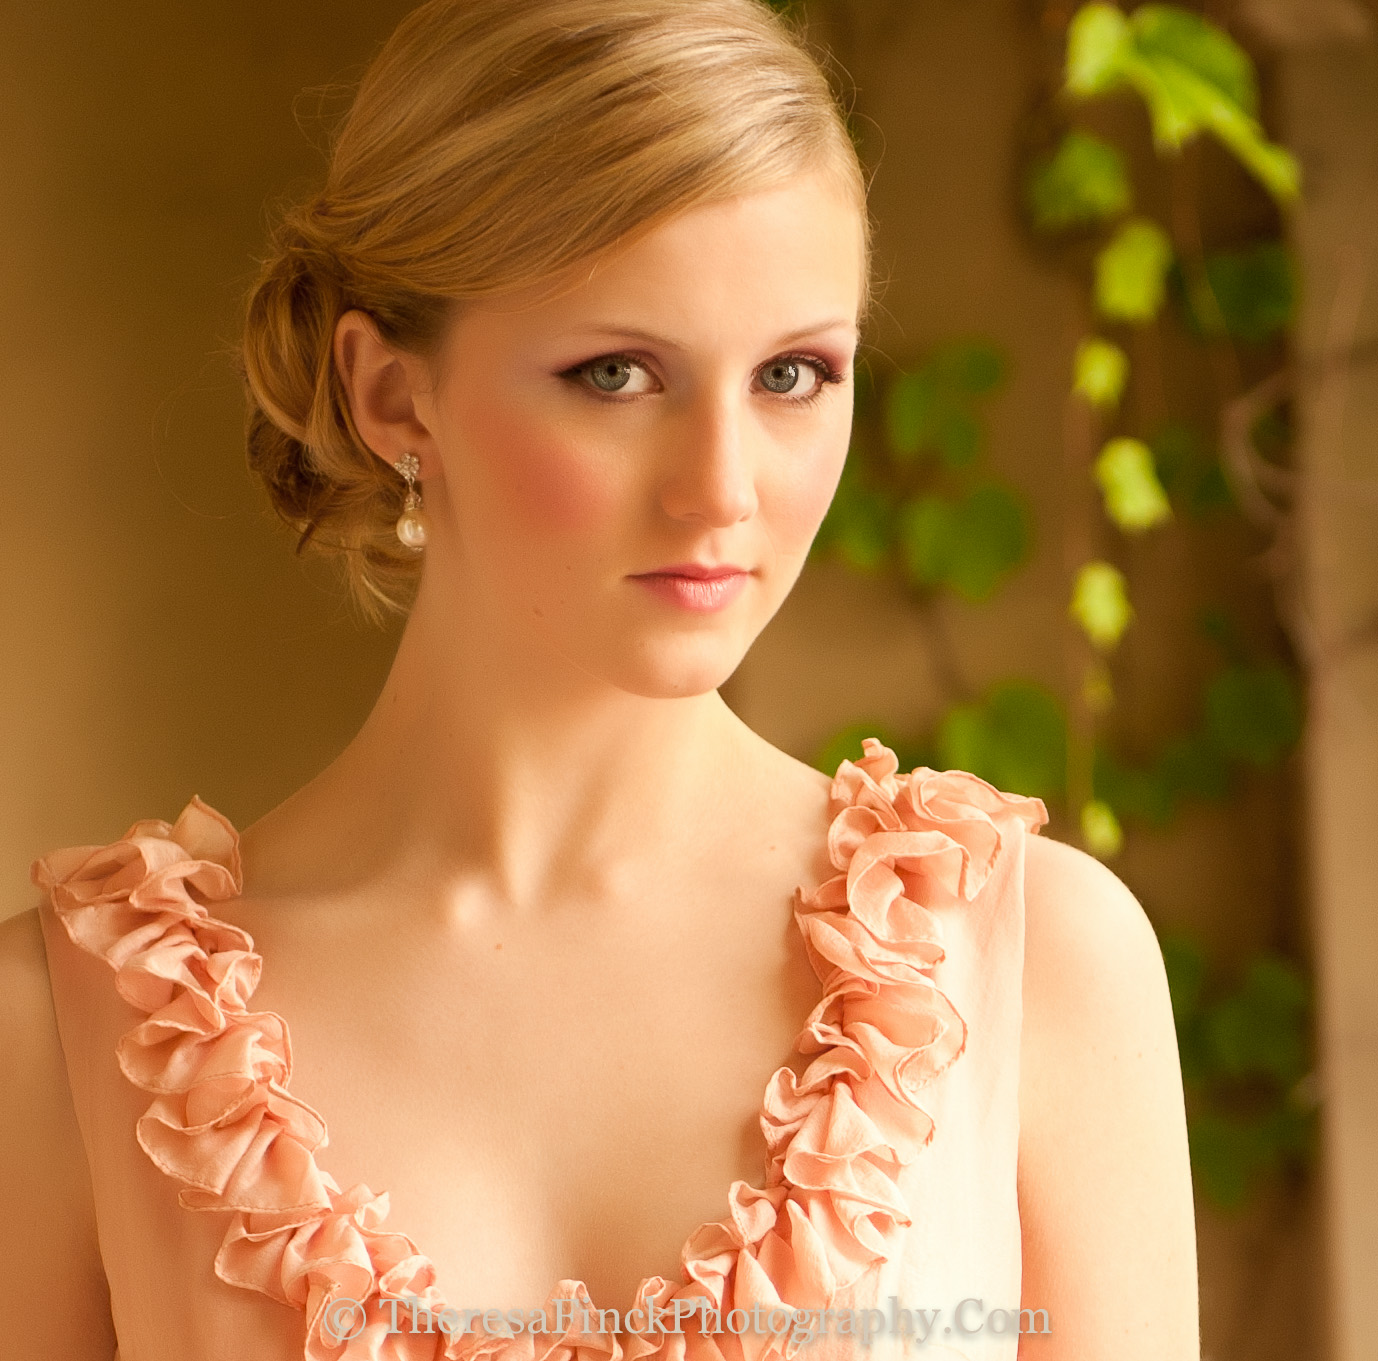 Theresa finck photography sposa bella couture fashion for Chapman house